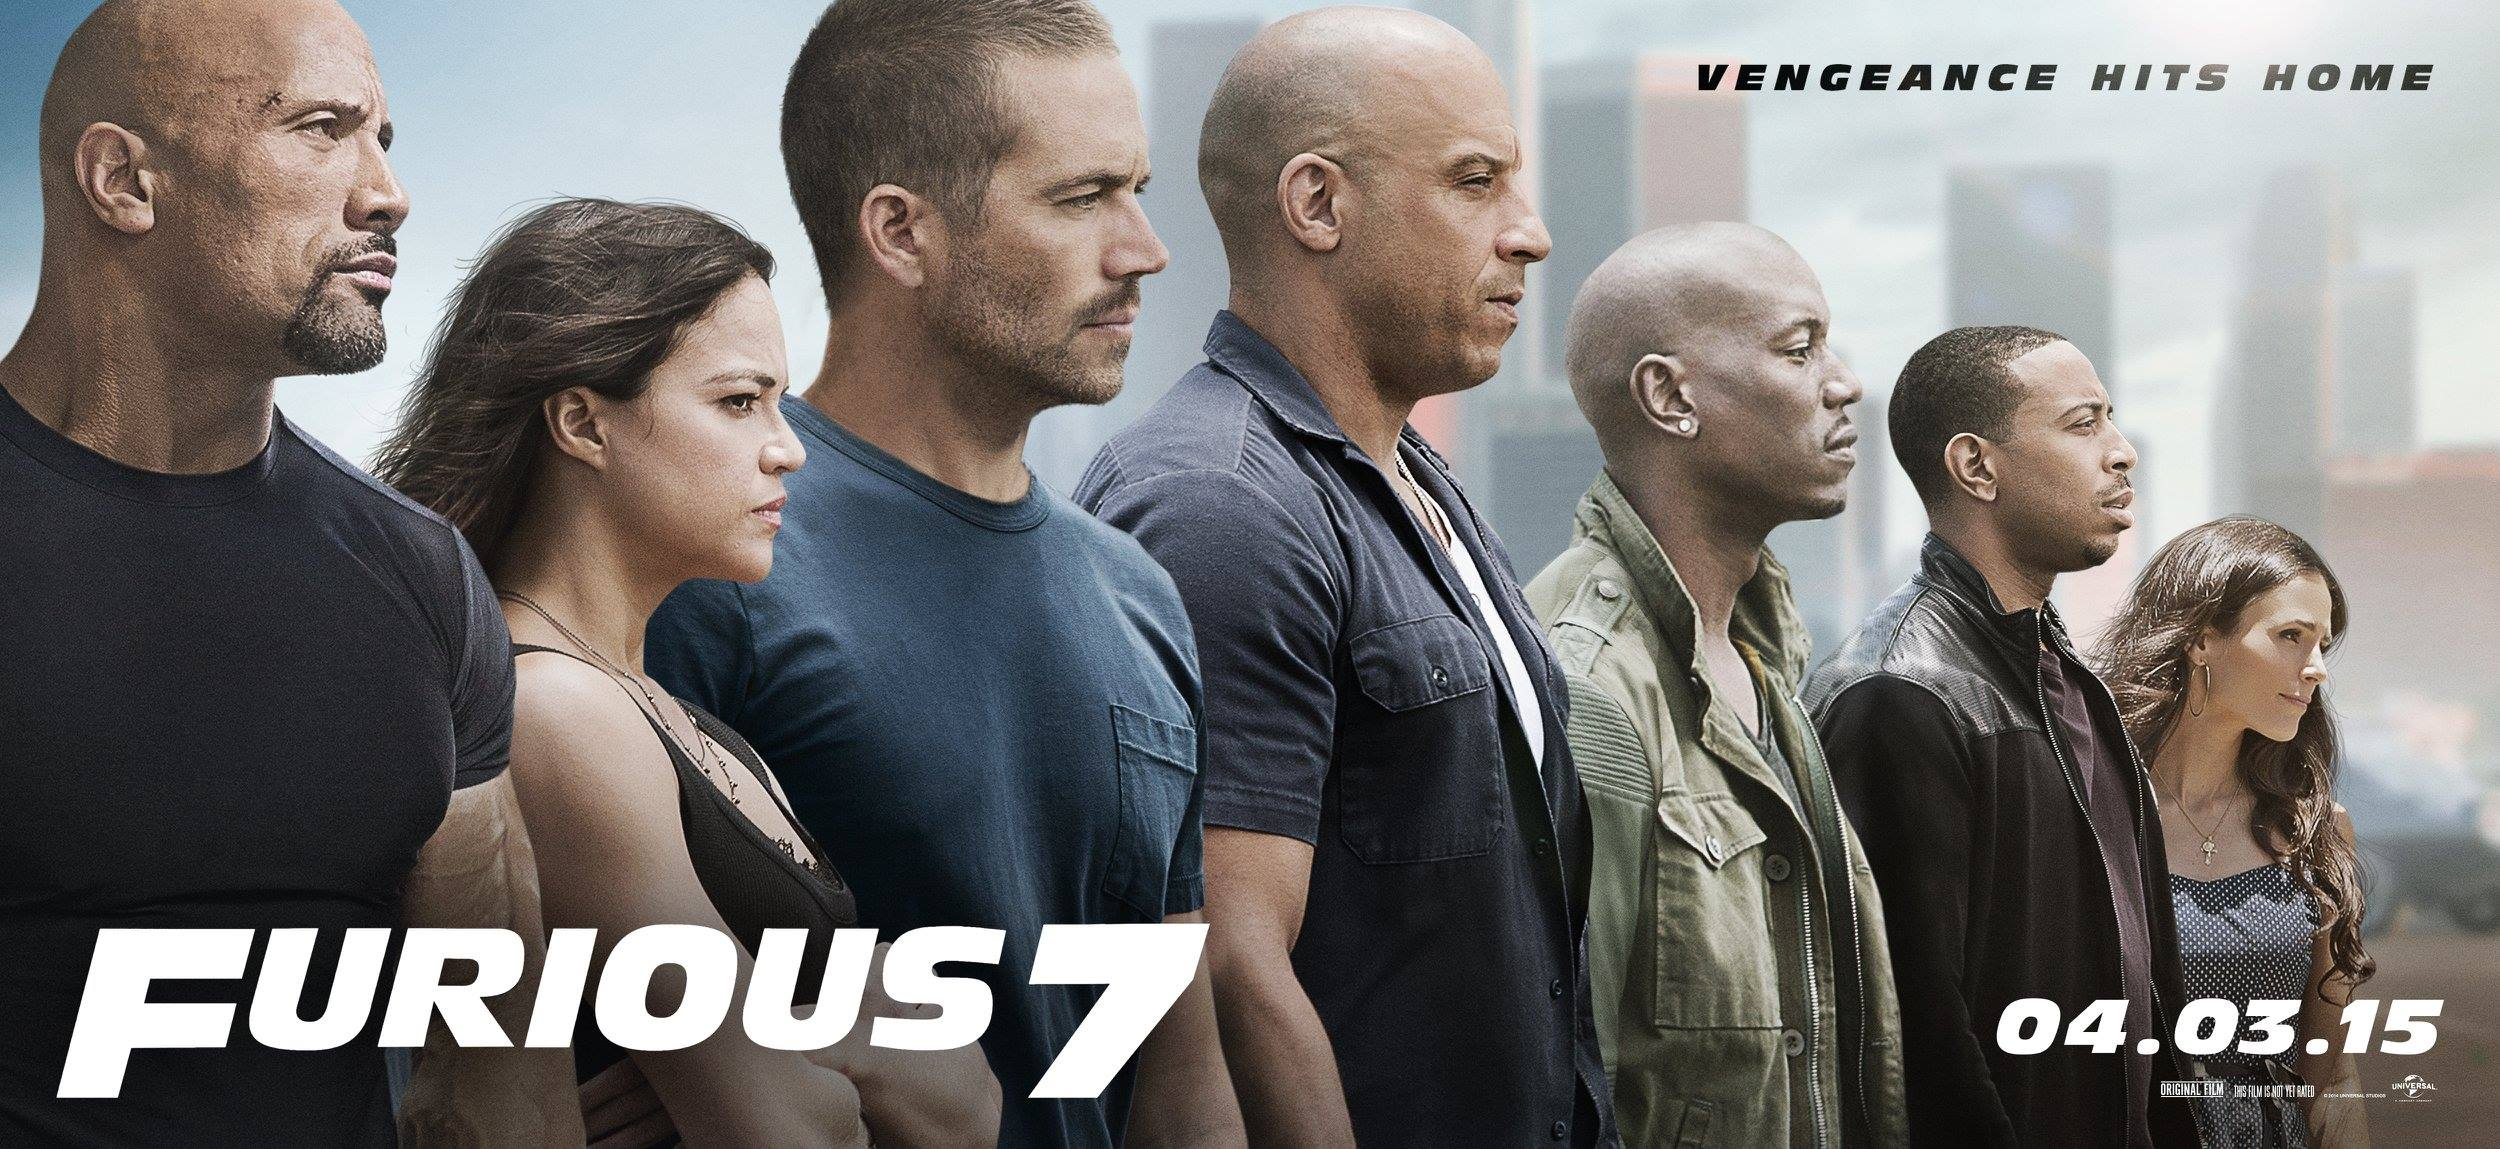 Fast and Furious 7 hd desktop wallpaper 2500x1149